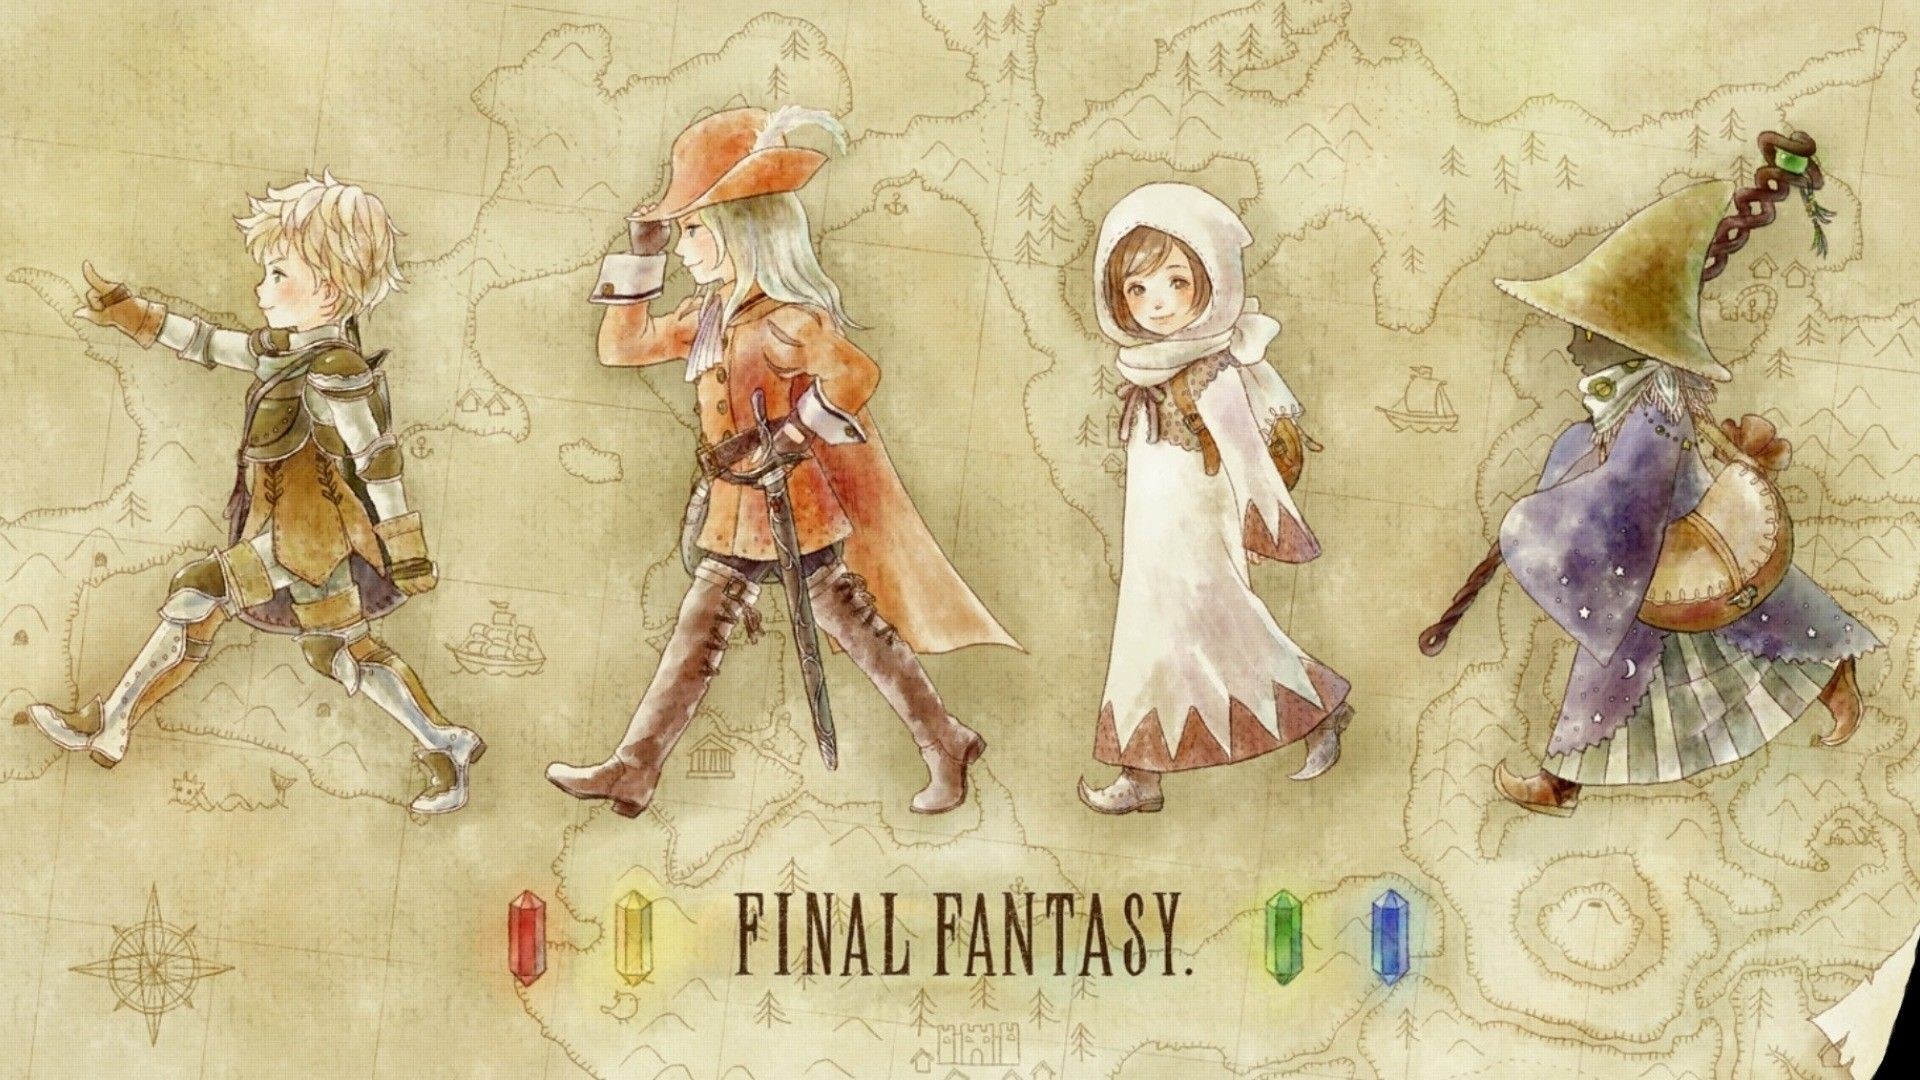 final fantasy 6 wallpapers (79+ images)